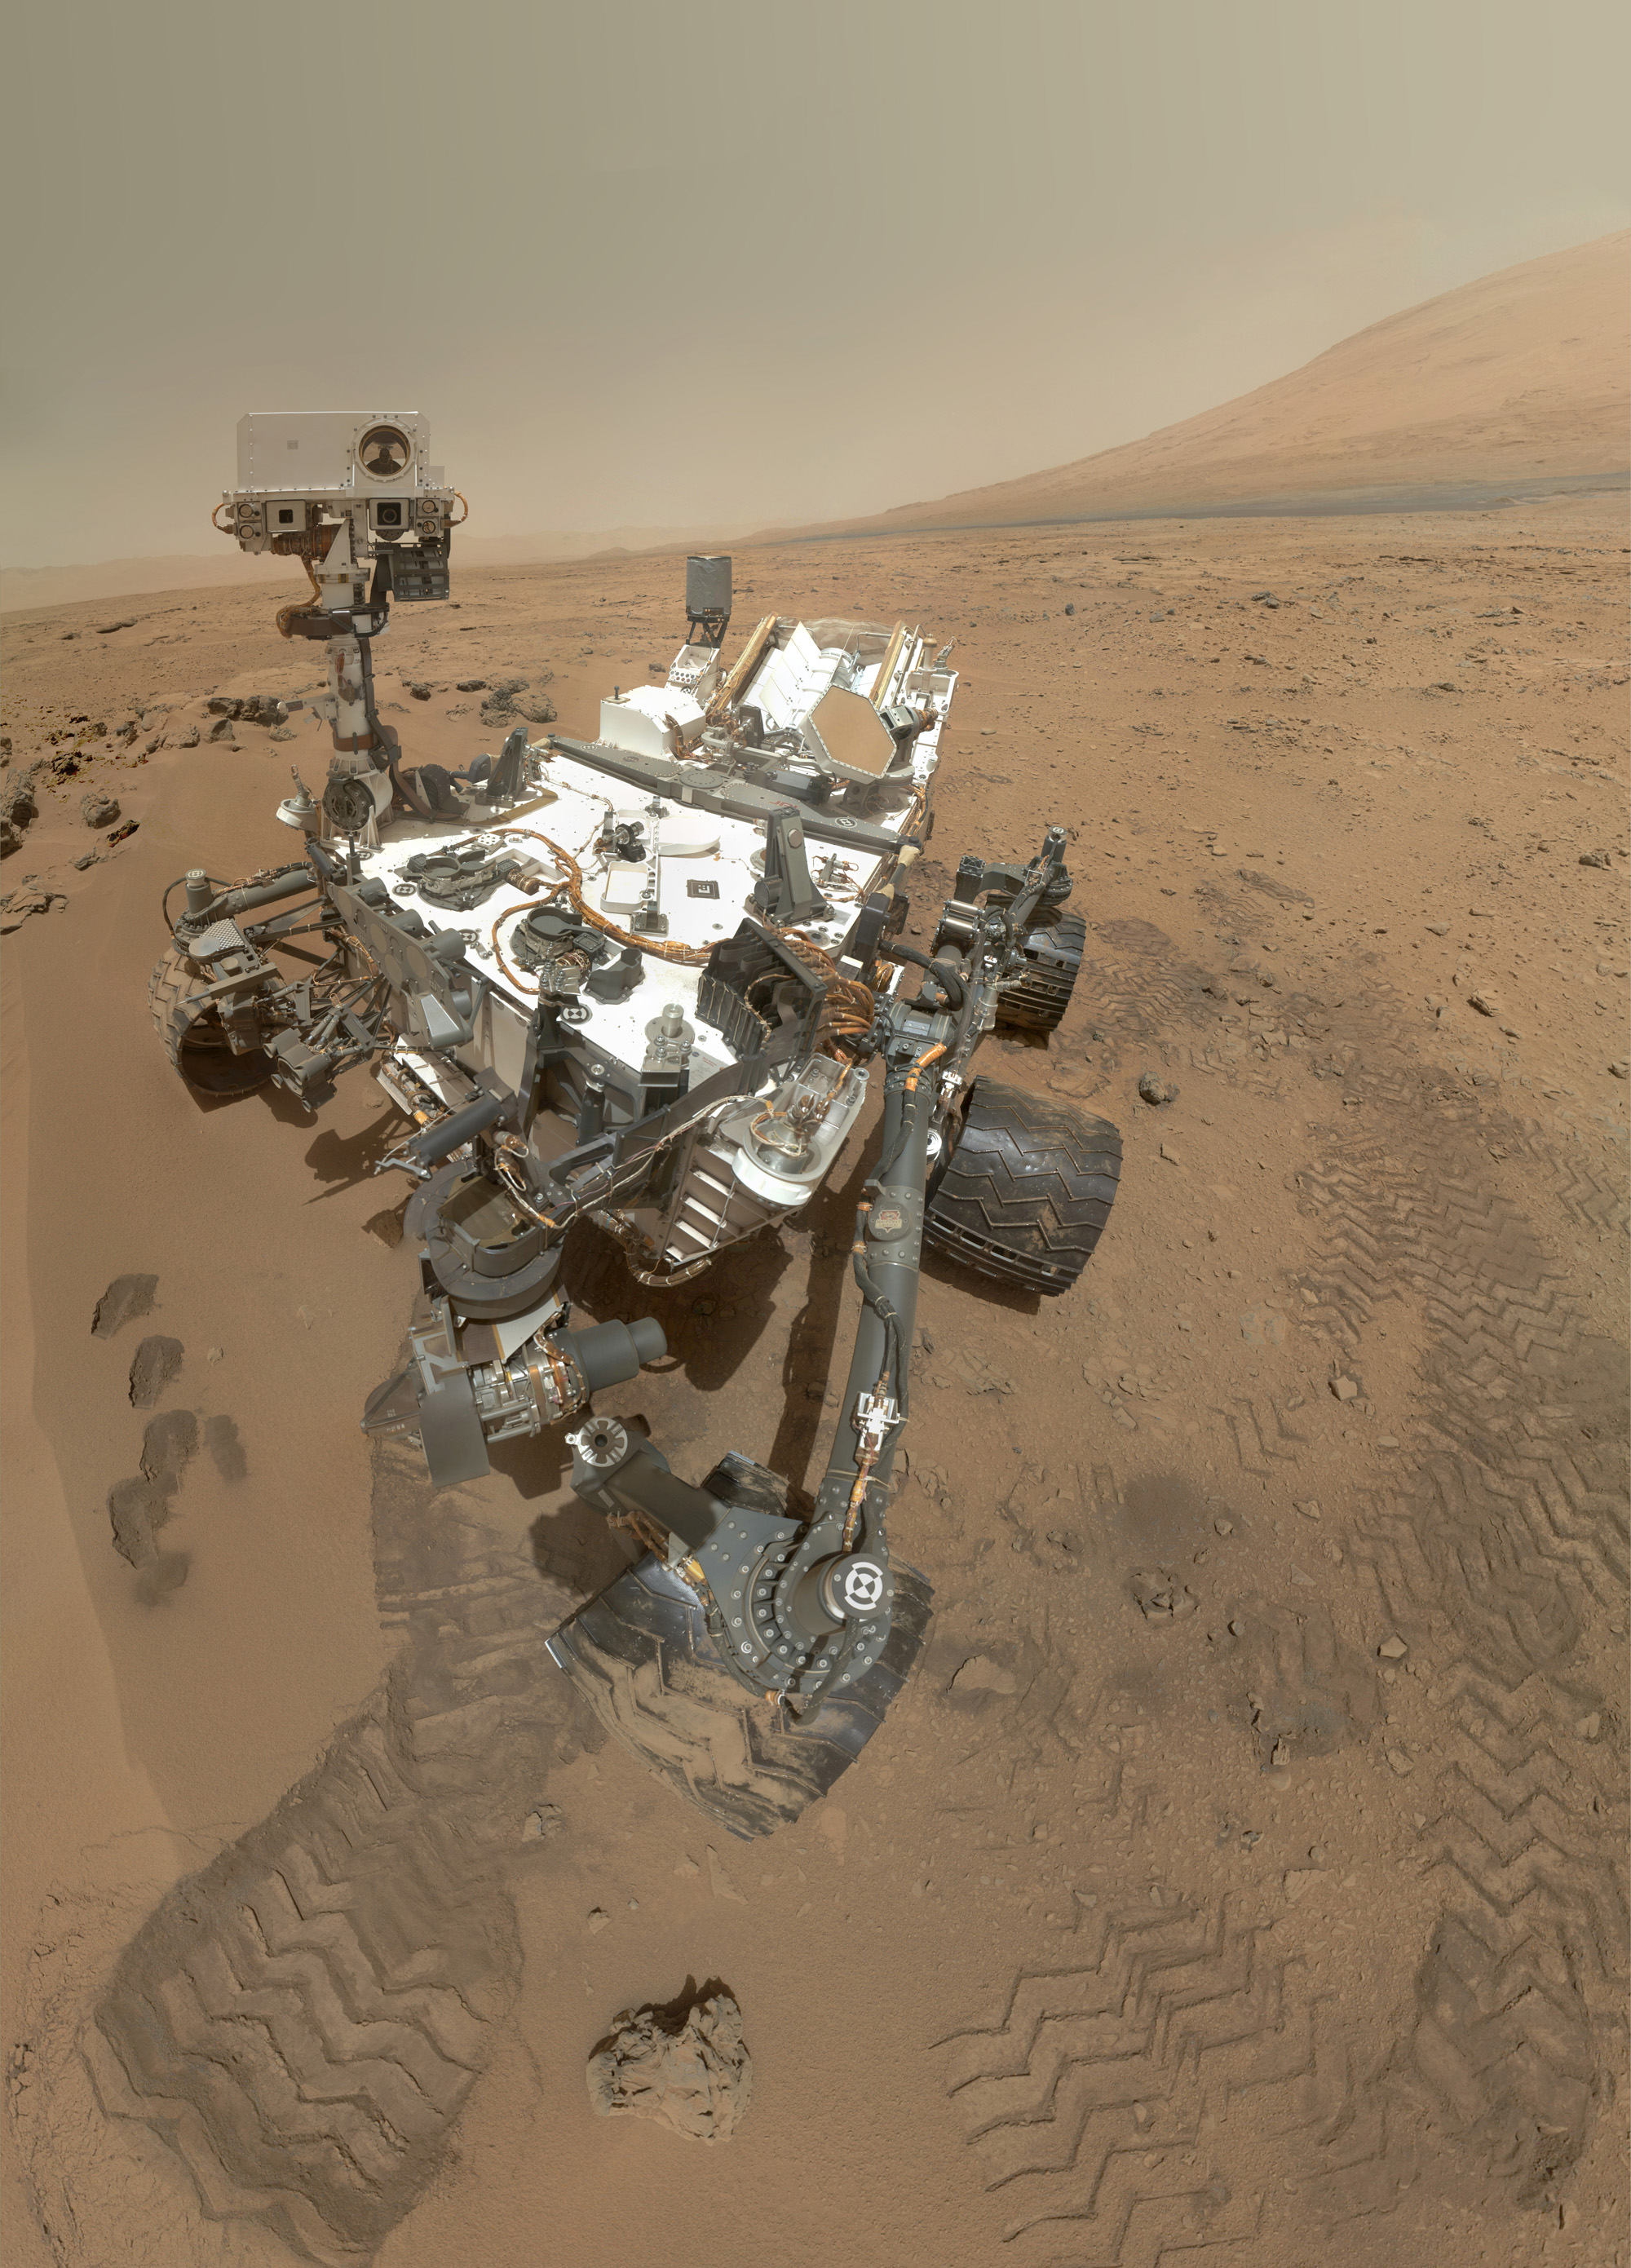 Curiosity Rover's Hi-Res Self-Portrait